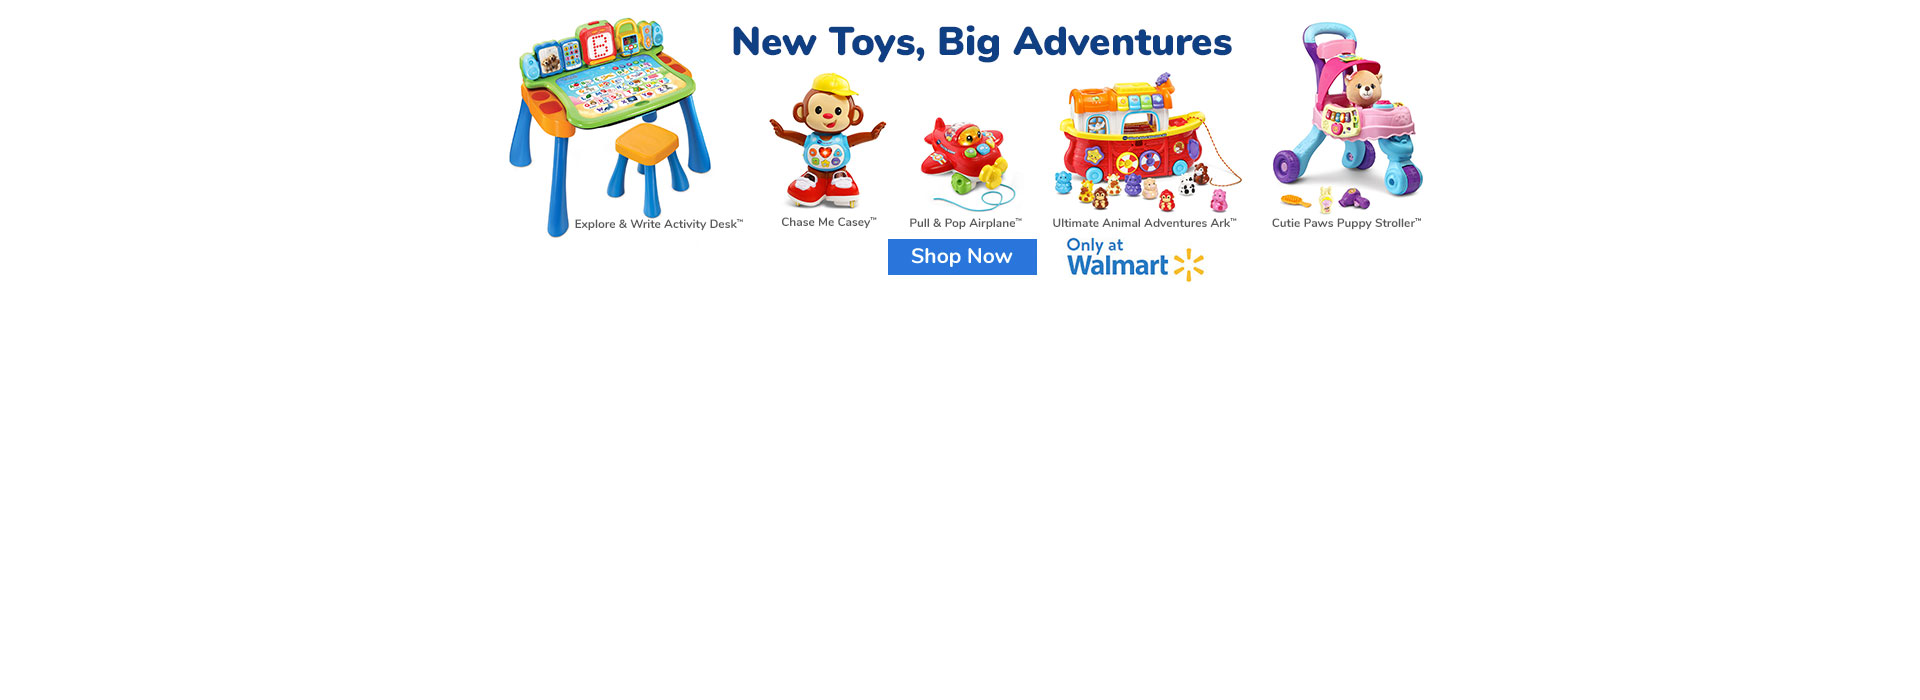 Exclusive Learning Toys available only at Walmart